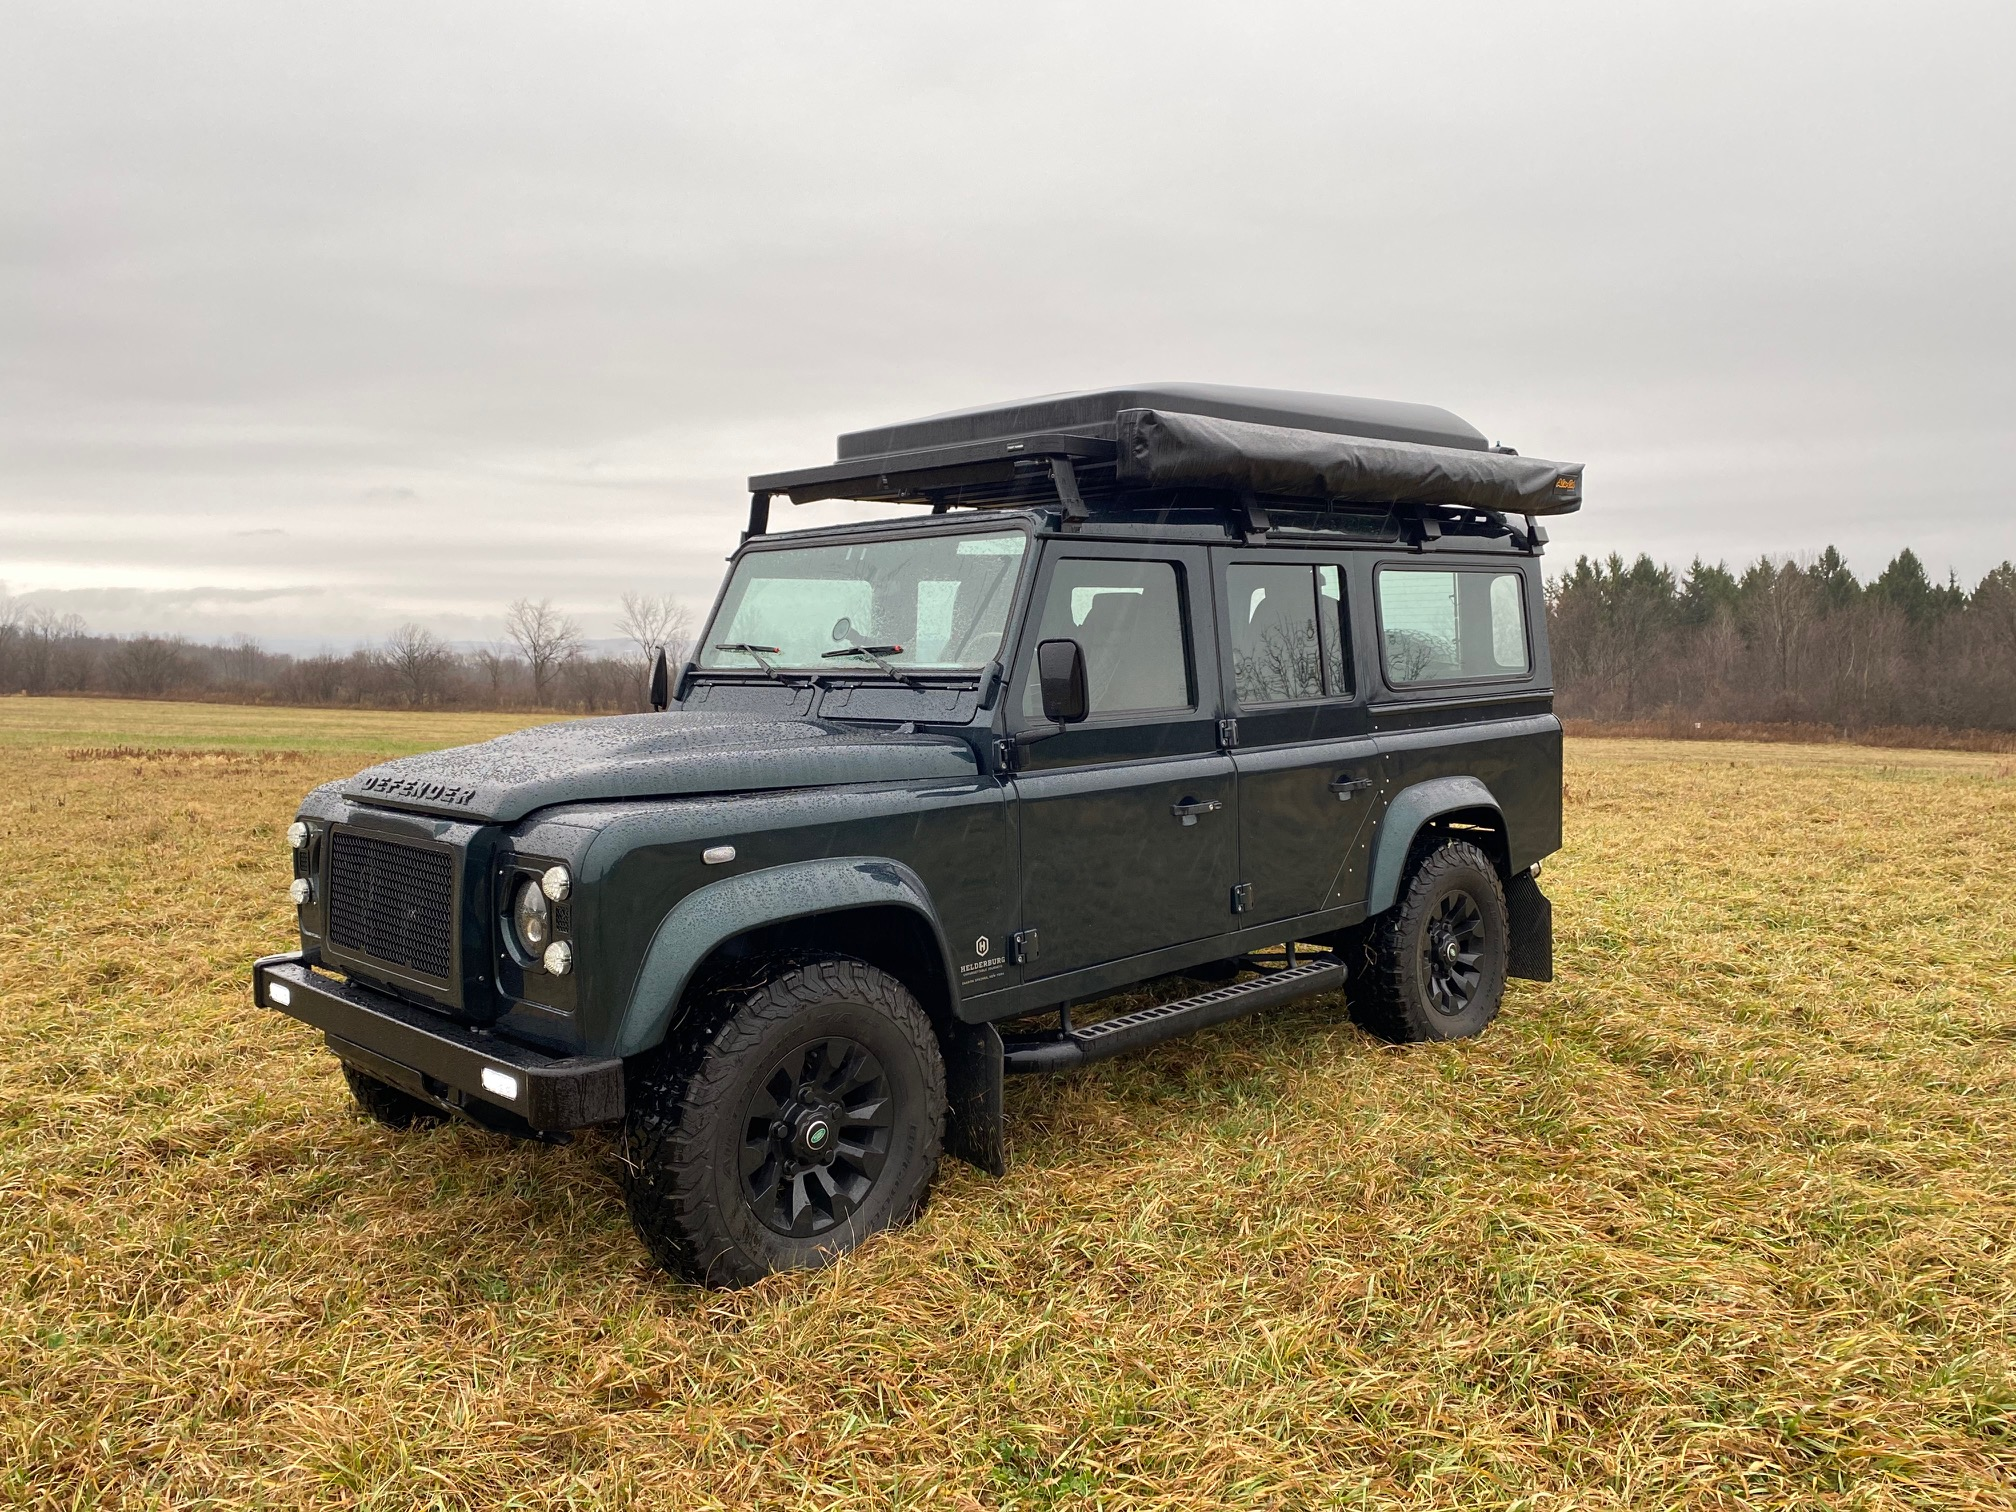 The lighting on a Helderburg Bespoke Defender (custom built Defender) is modern LED technology that will light the darkest roads and the light beam pattern is wide to see animals or pedestrians on the shoulder...without blinding on-coming traffic. Tent and Roof rack not included.